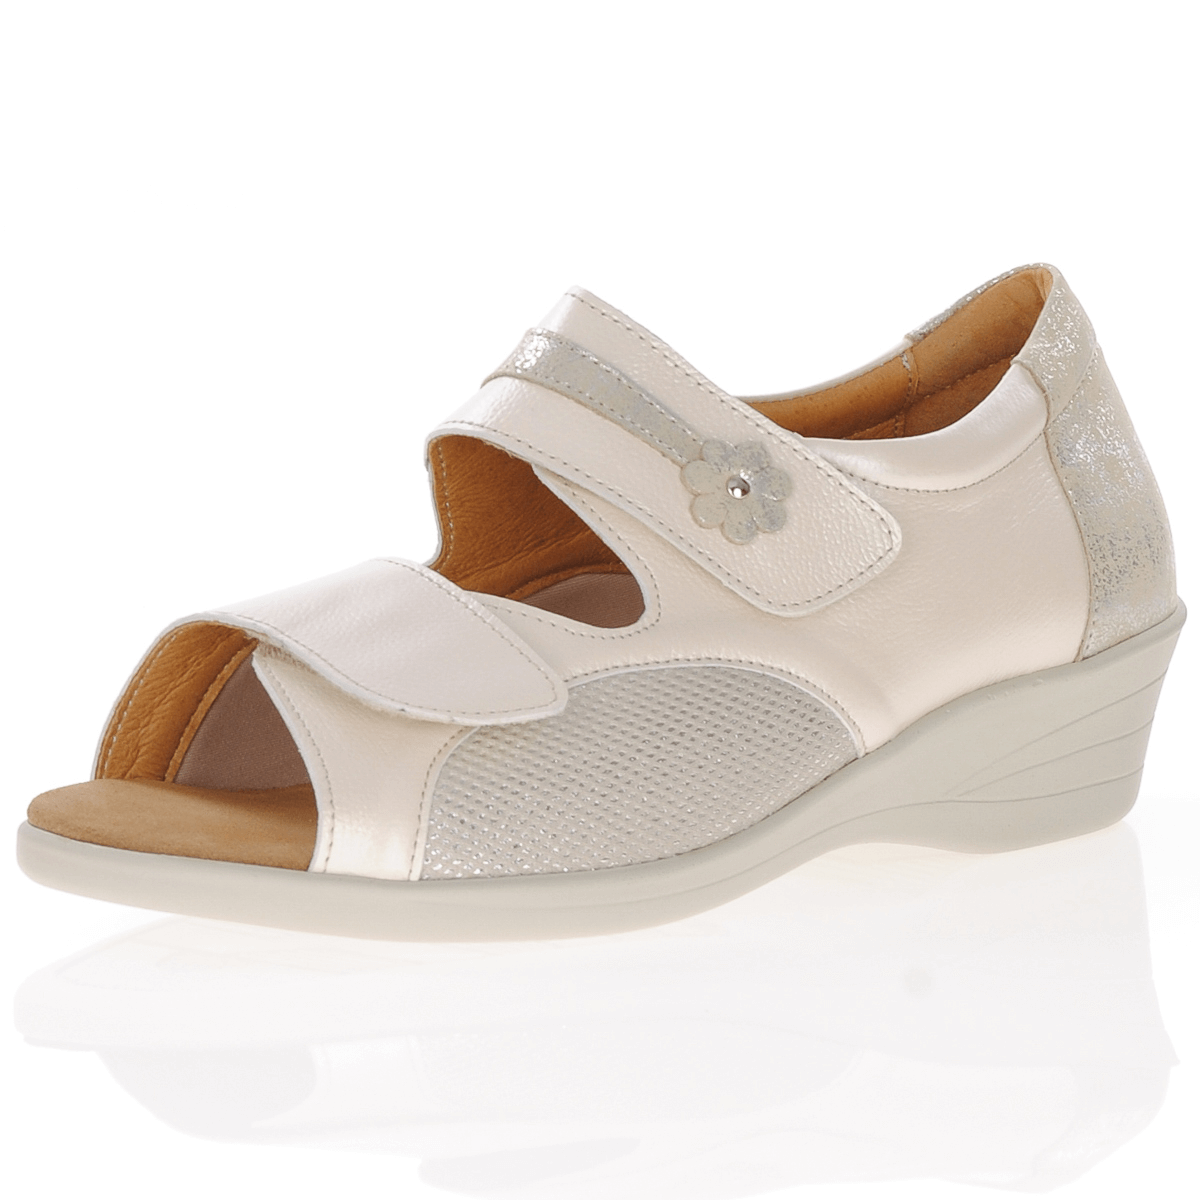 Softmode - Stacey Closed Heel Sandal, Beige